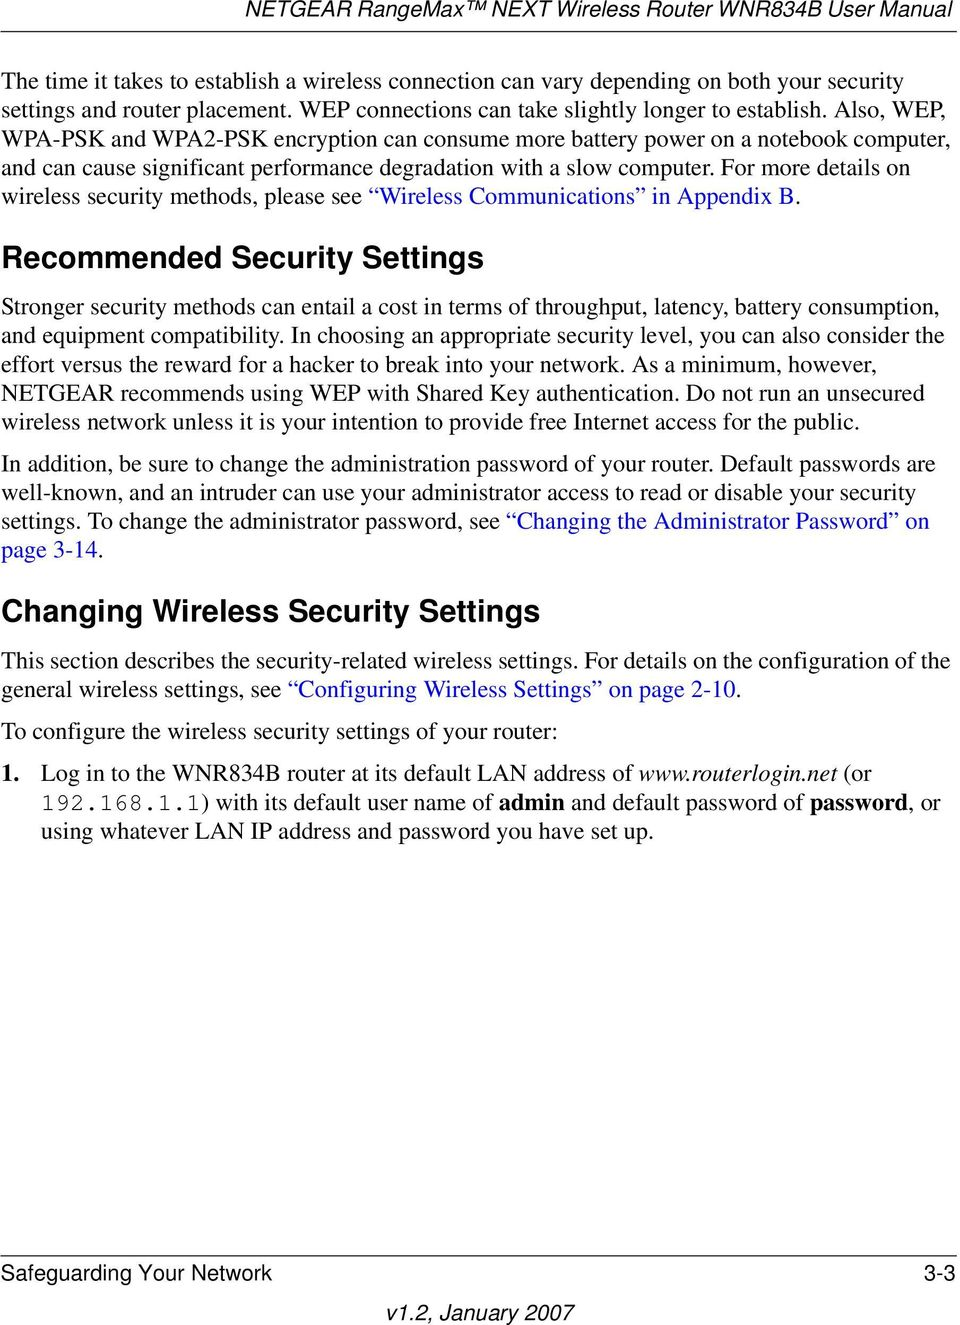 For more details on wireless security methods, please see Wireless Communications in Appendix B.